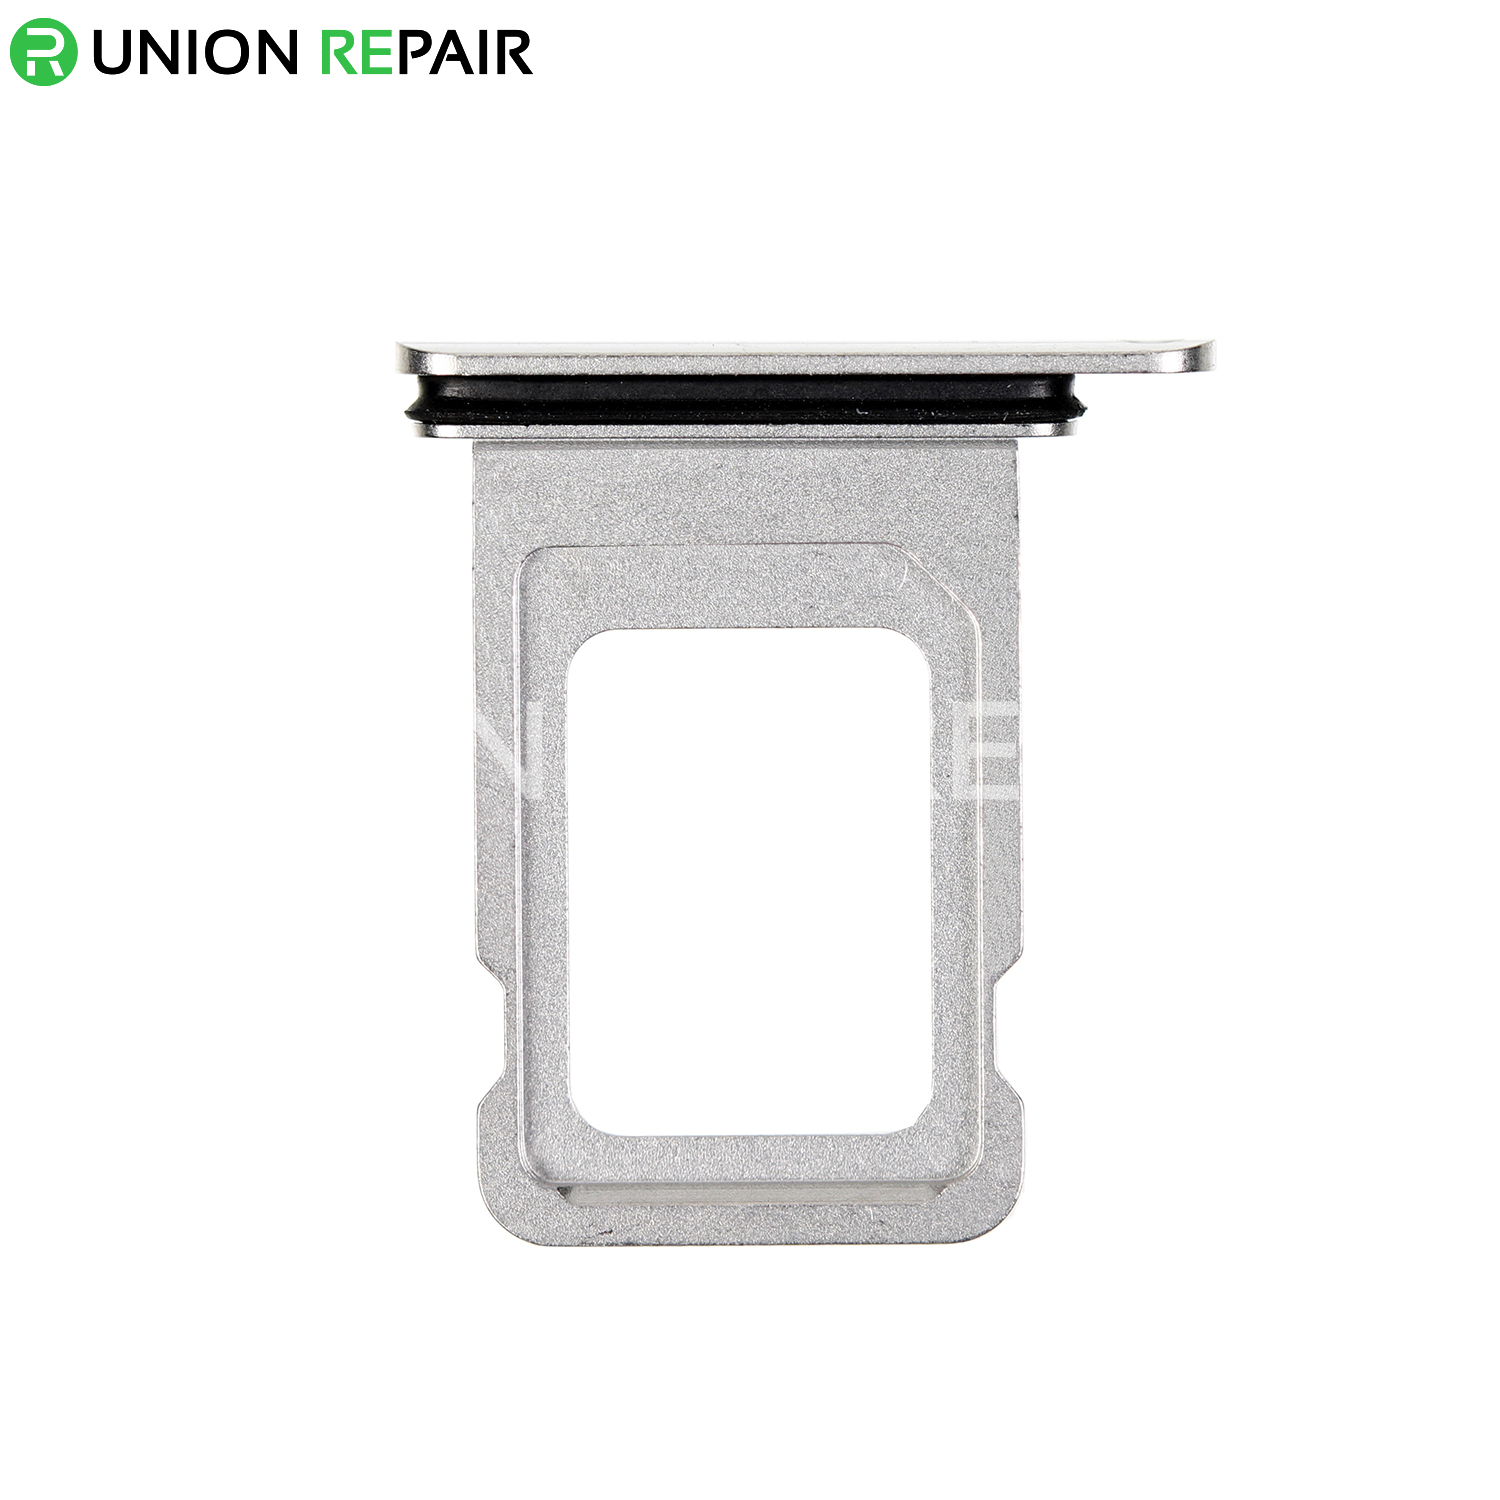 Replacement for iPhone 11 Pro/11 Pro Max Single SIM Card Tray - Silver